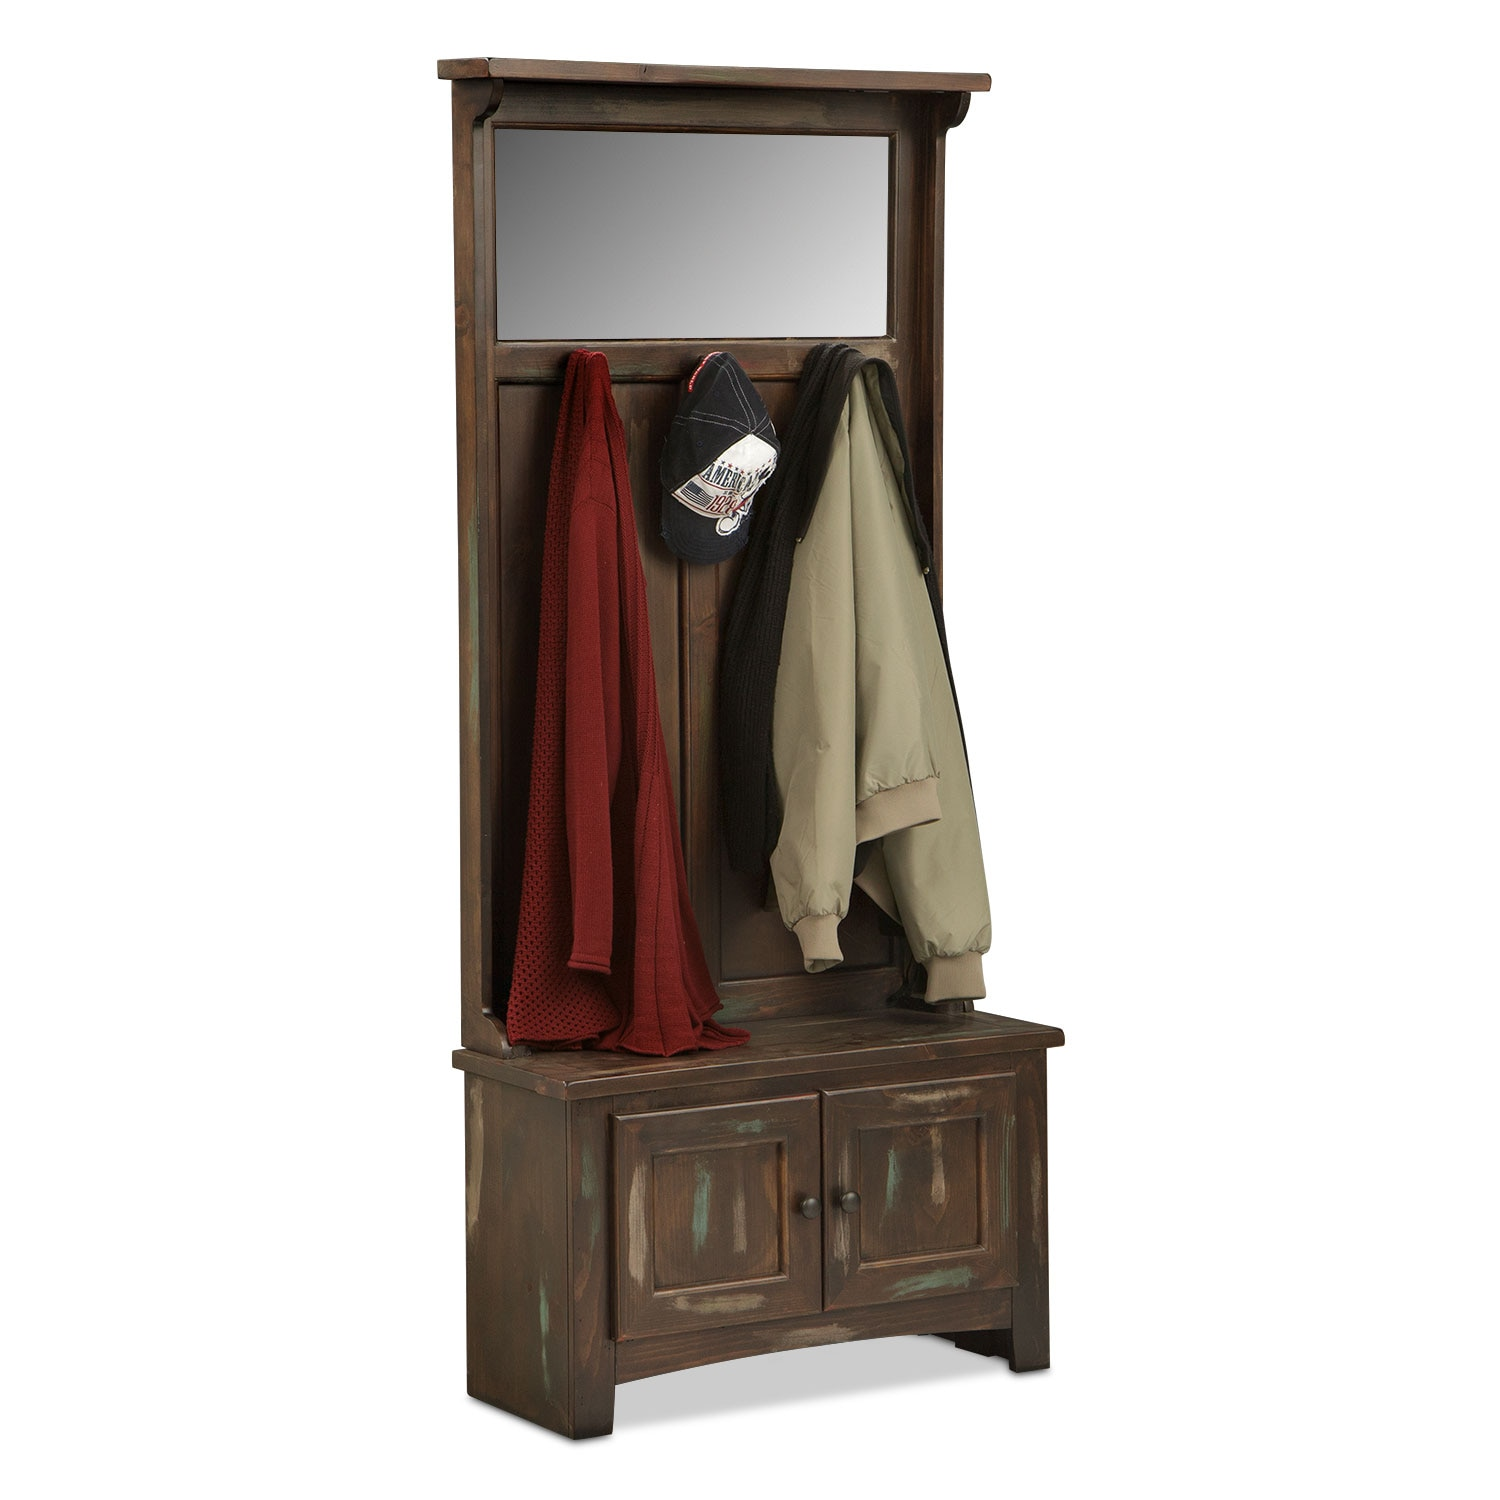 Home D Cor Accents Sale American Signature American Signature Furniture